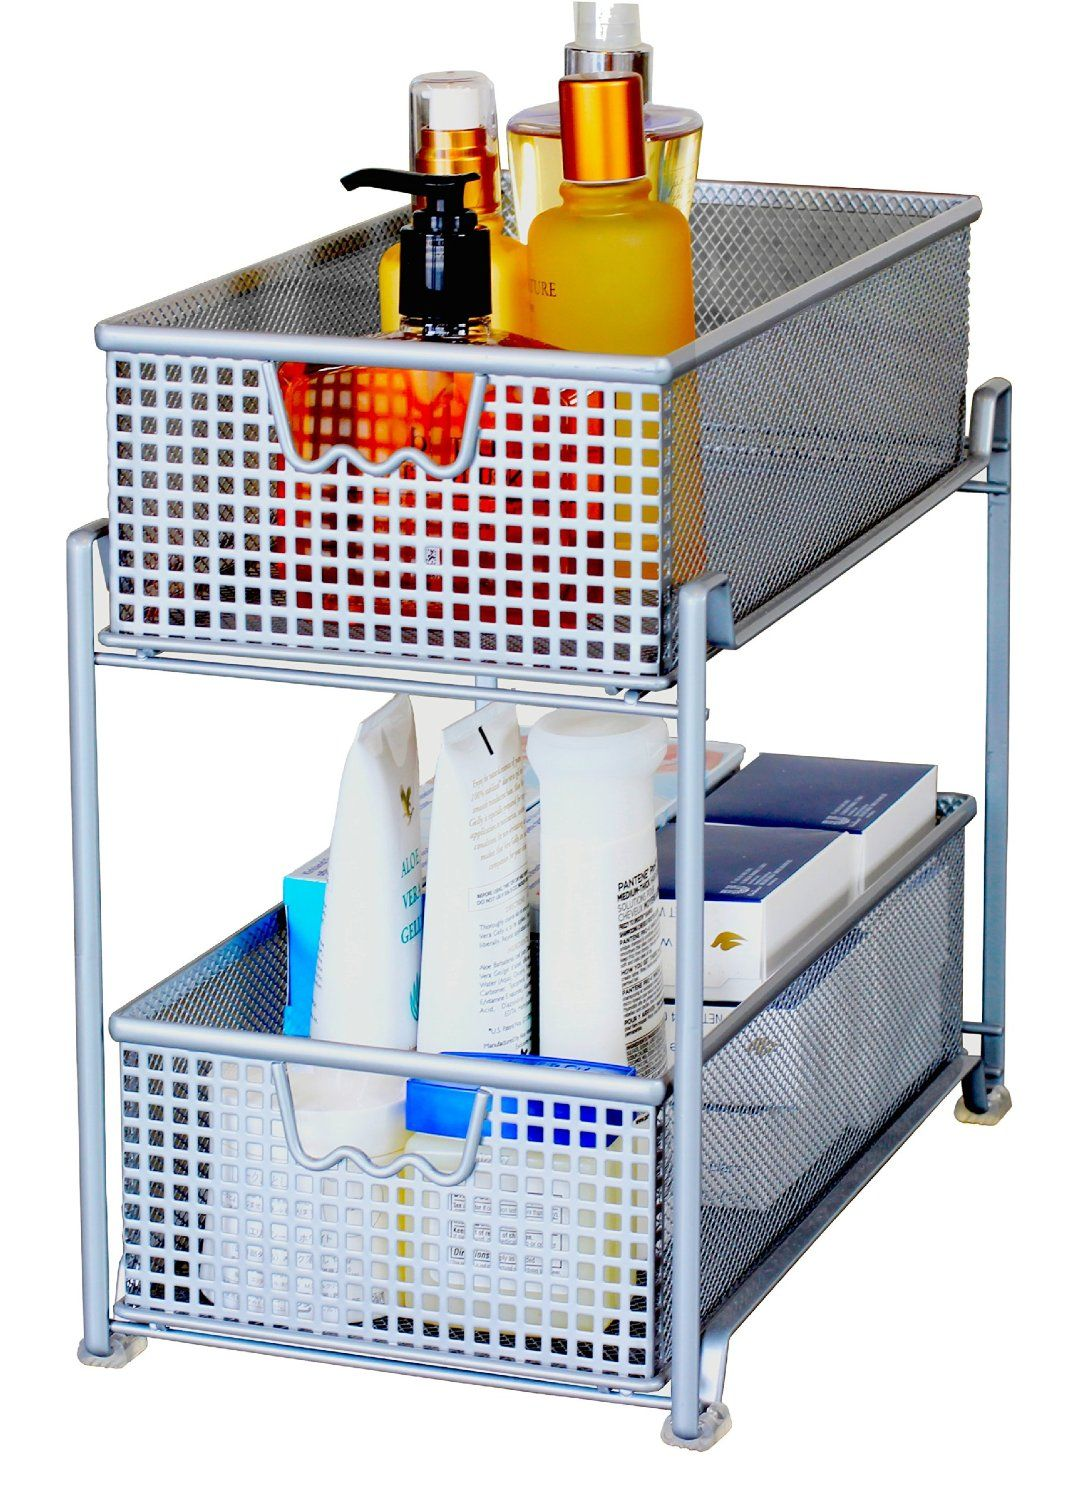 Uncategorized Sliding Basket Organizer amazon com decobros two tier mesh sliding cabinet basket organizer drawer silver